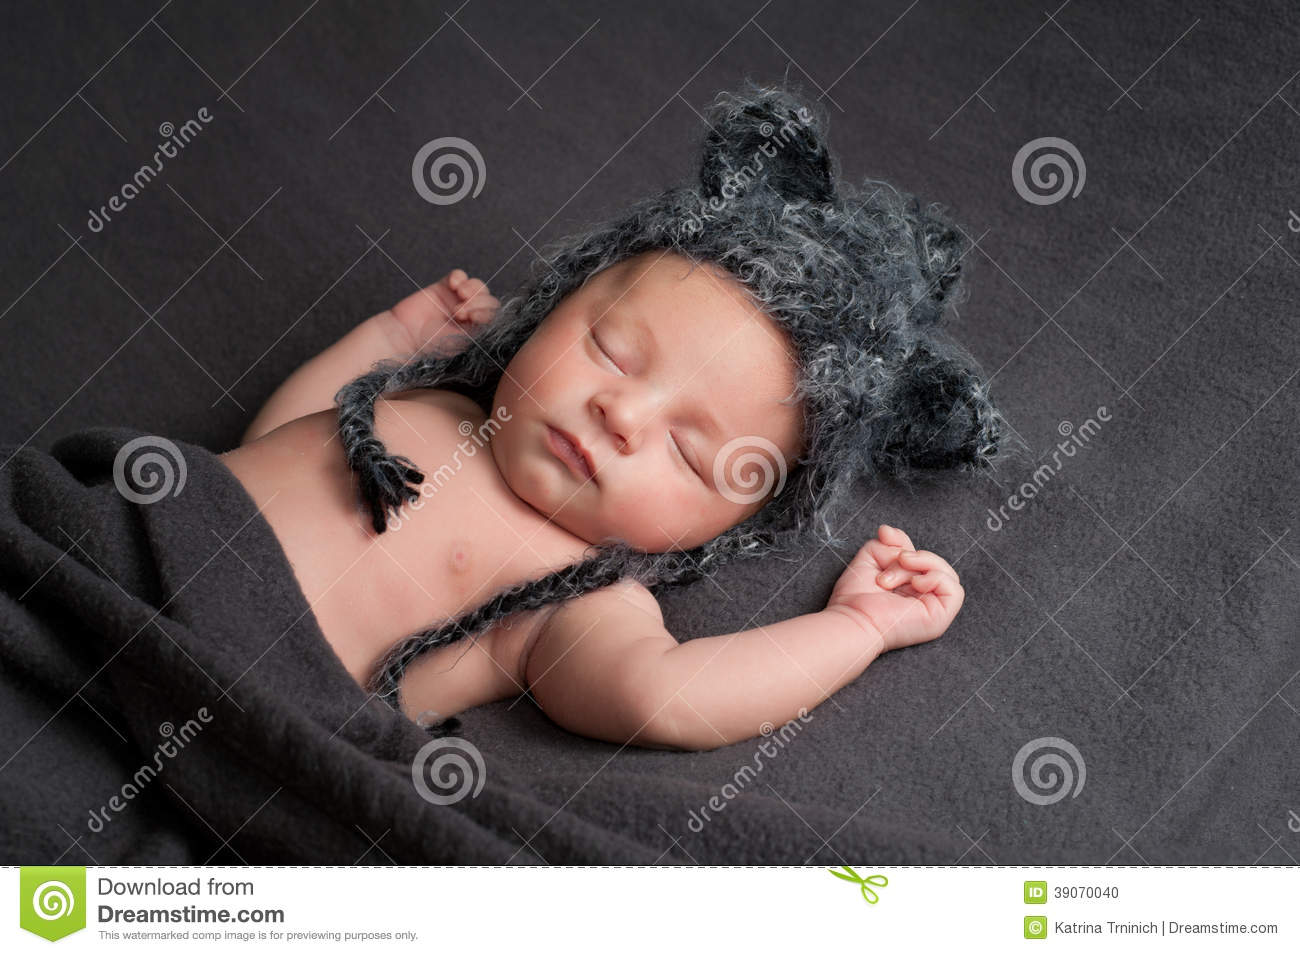 Newborn Baby Boy With Fishing Hat And Pole Stock Image - Image of ... 16f8794d8216